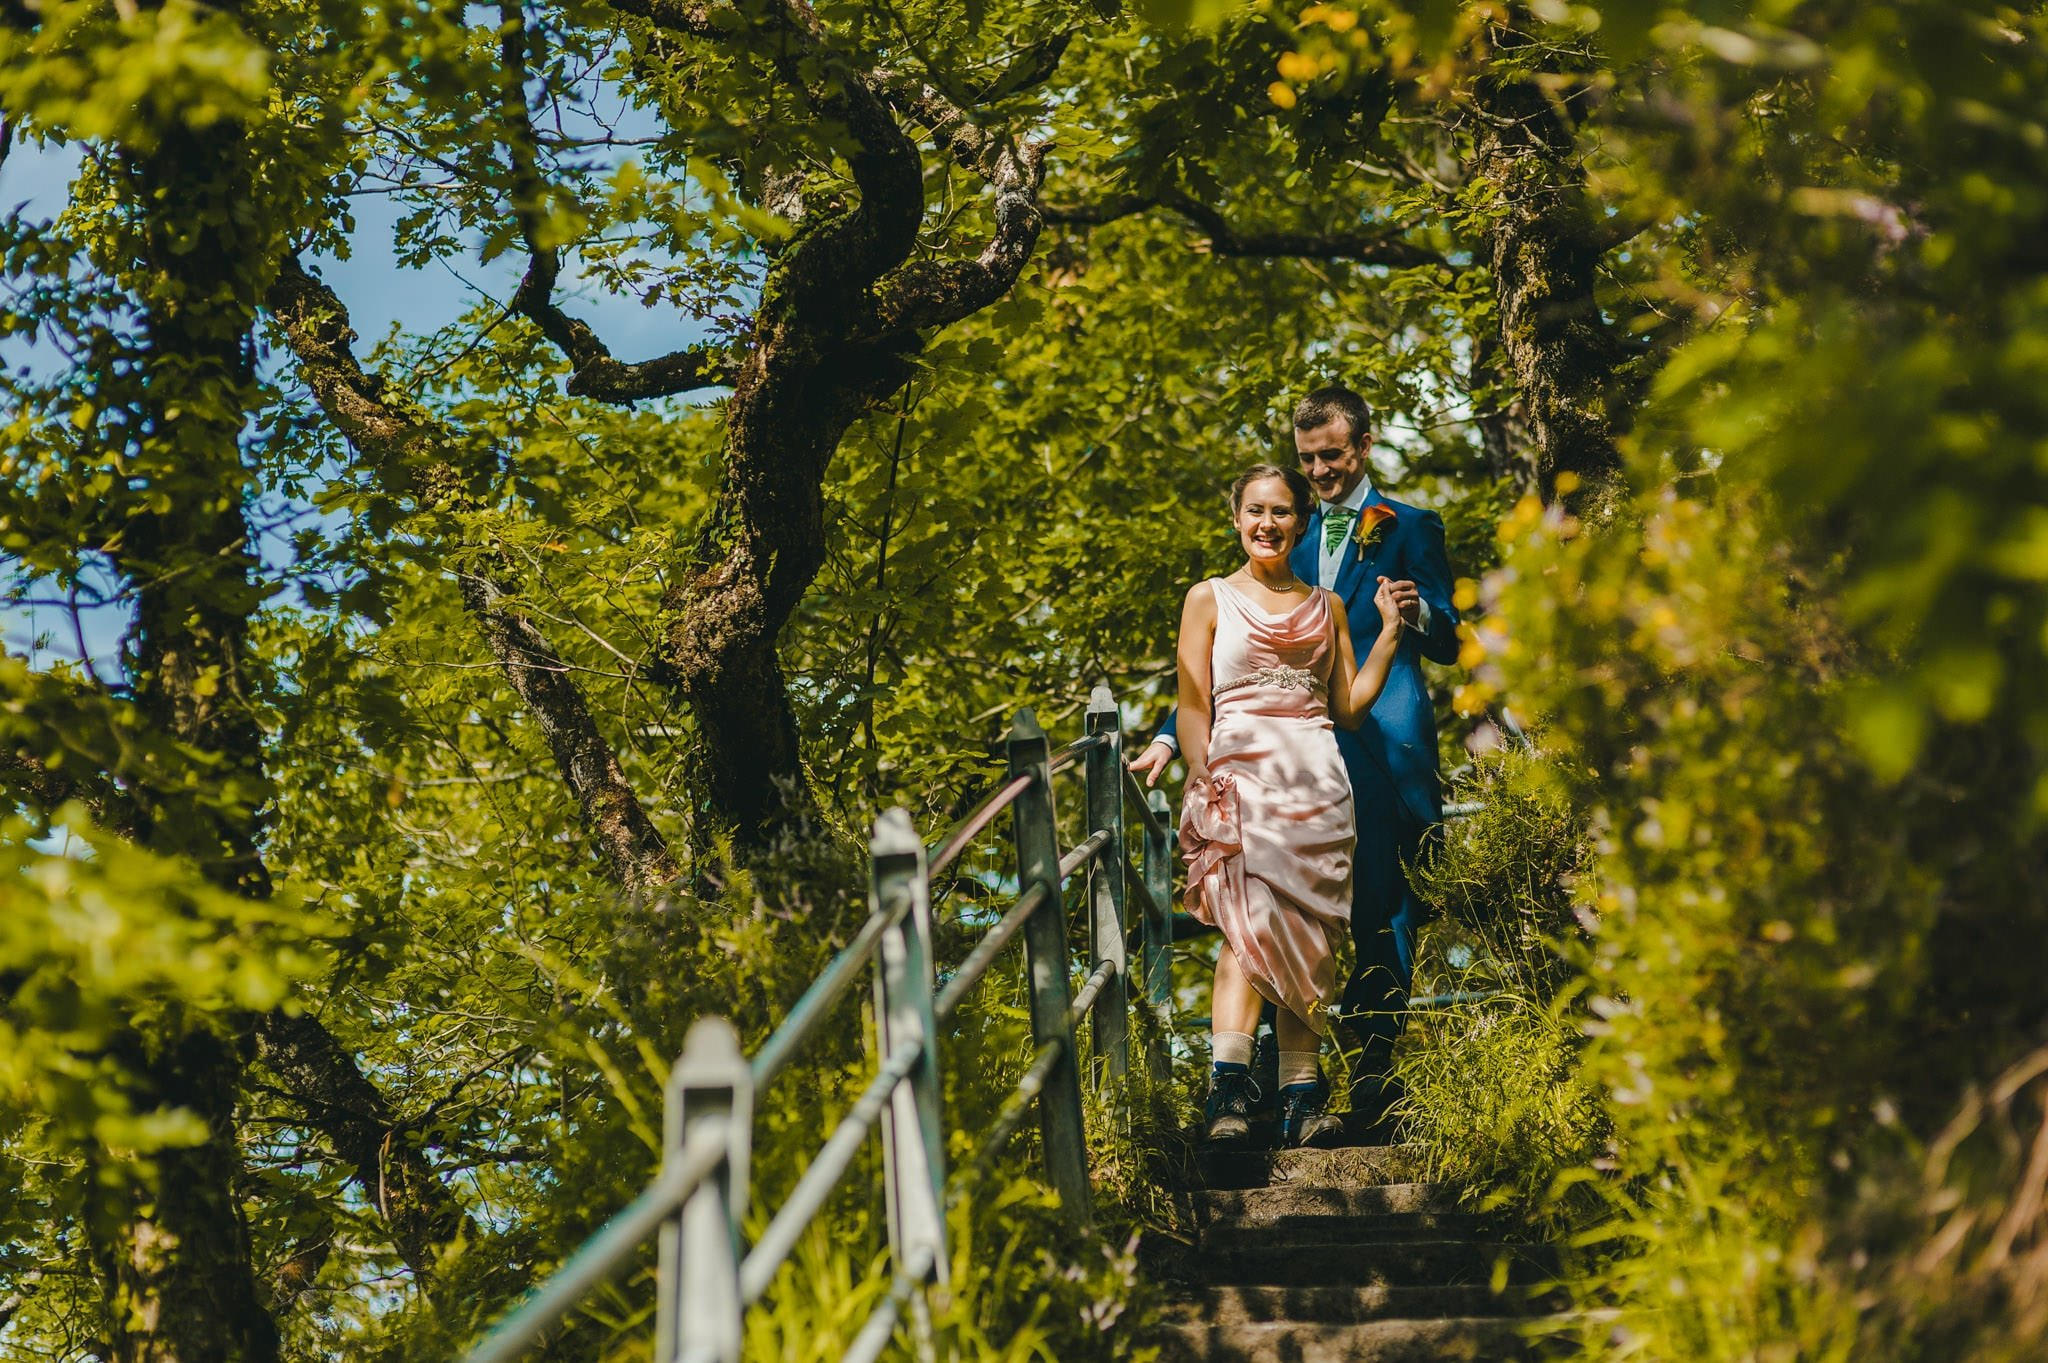 Wedding photography at Y Talbot Hotel in Tregaron, Wales | Tina + Phil 41